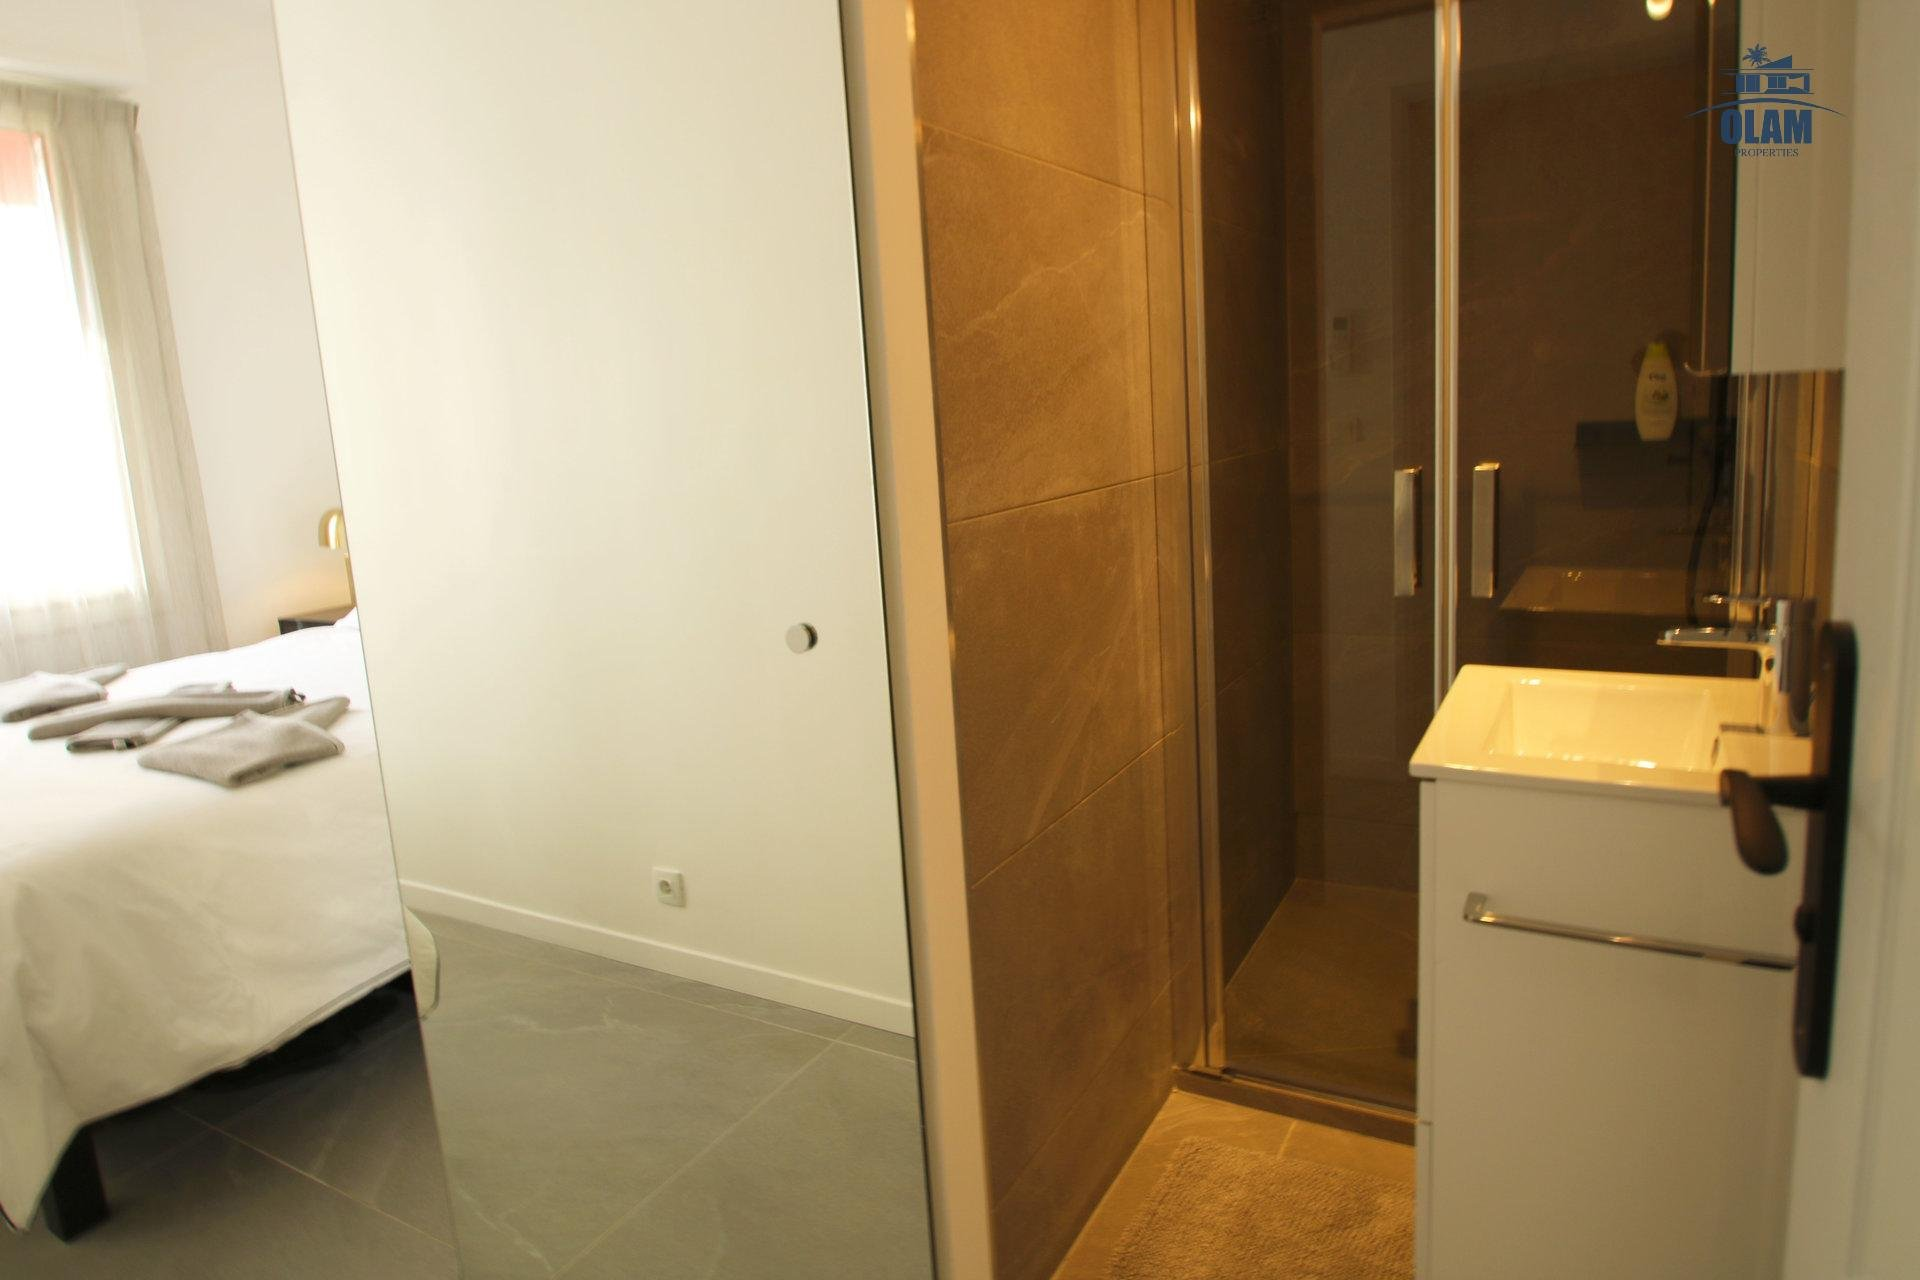 Bedroom, shower room, vacancy, Cannes, Croisette, French Riviera